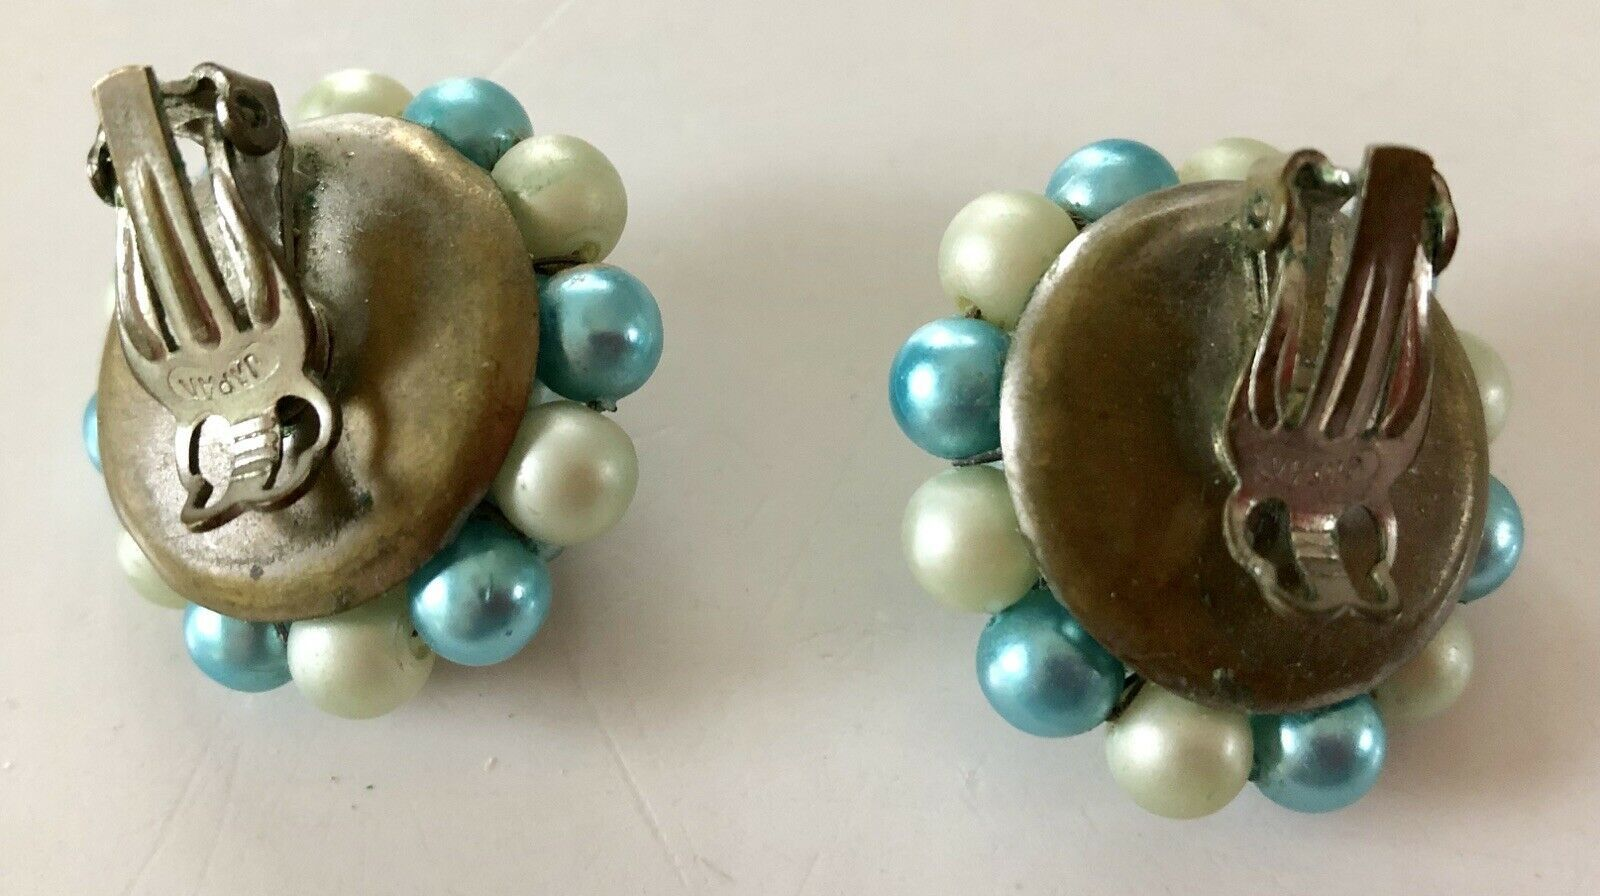 Vintage 50's Mid-Cent Turquoise, Off White Luster Cluster Earrings Signed Japan